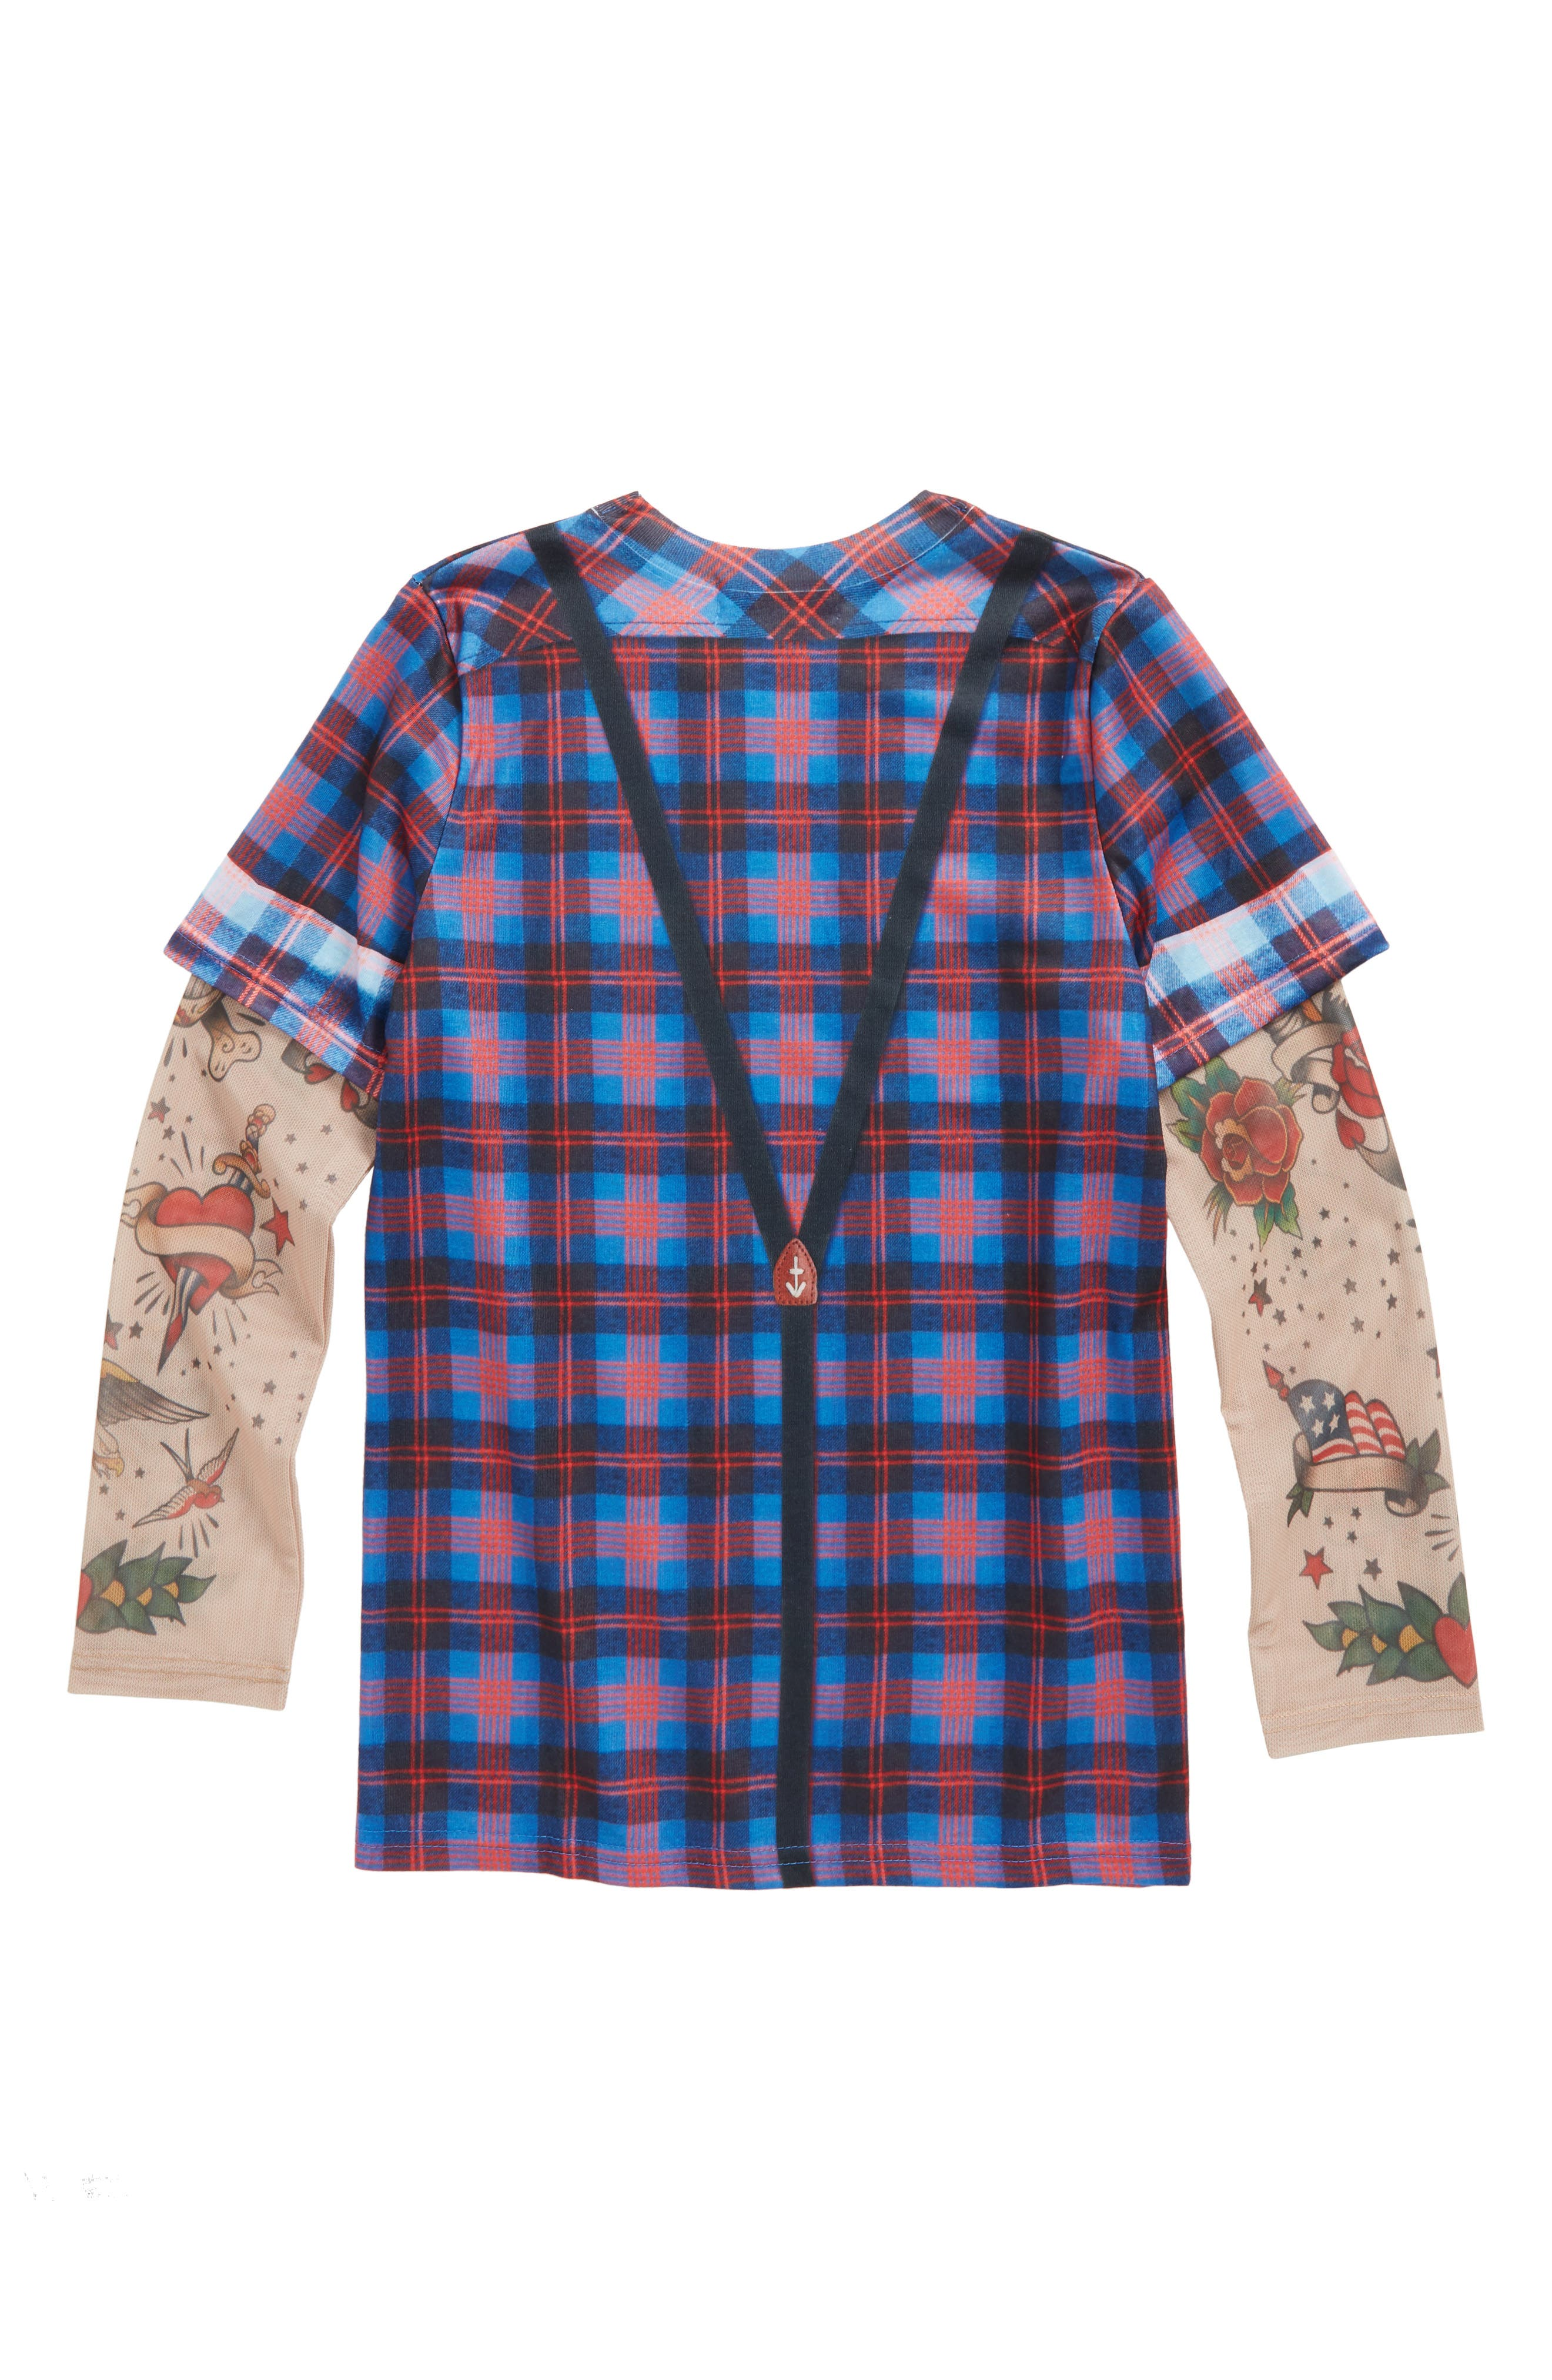 Hipster Bow Tie & Suspender Print T-Shirt with Tattoo Print Sleeves,                             Alternate thumbnail 2, color,                             400